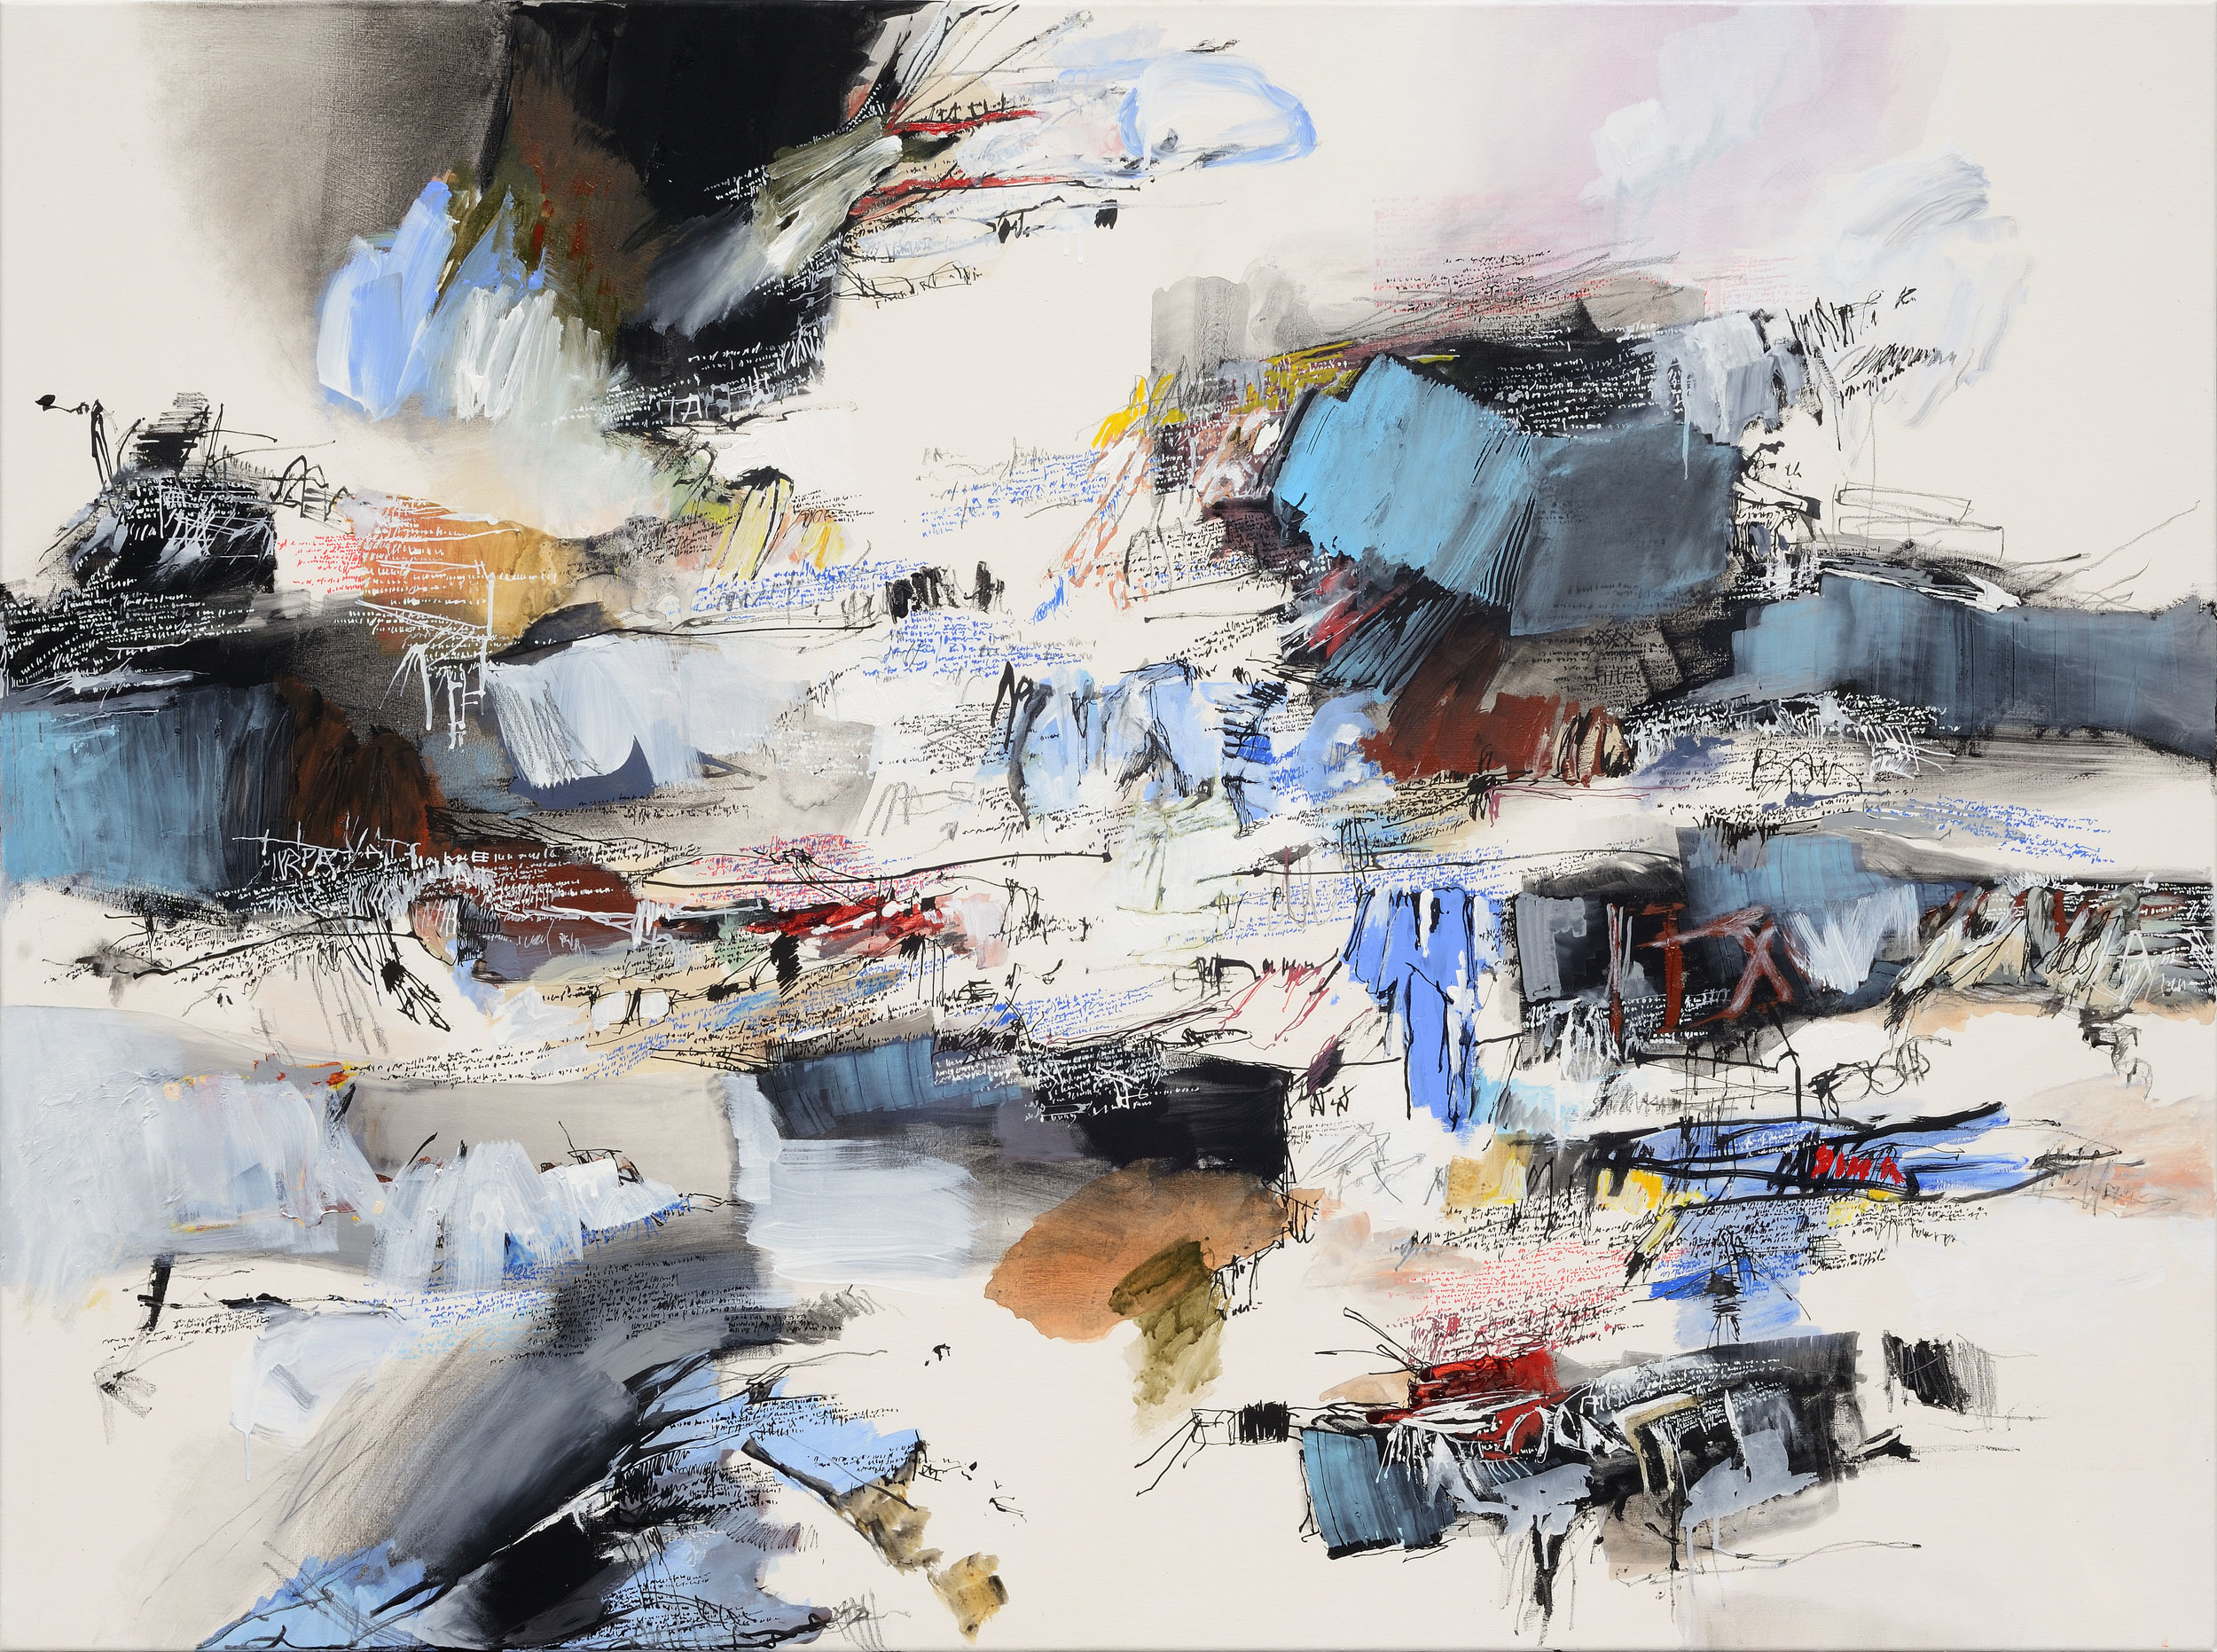 Galerie Koo_Jean-Philippe DUBOSCQ_2014-PA-09_2014_Mixed media on canvas_120x160cm_USD11,000.jpg